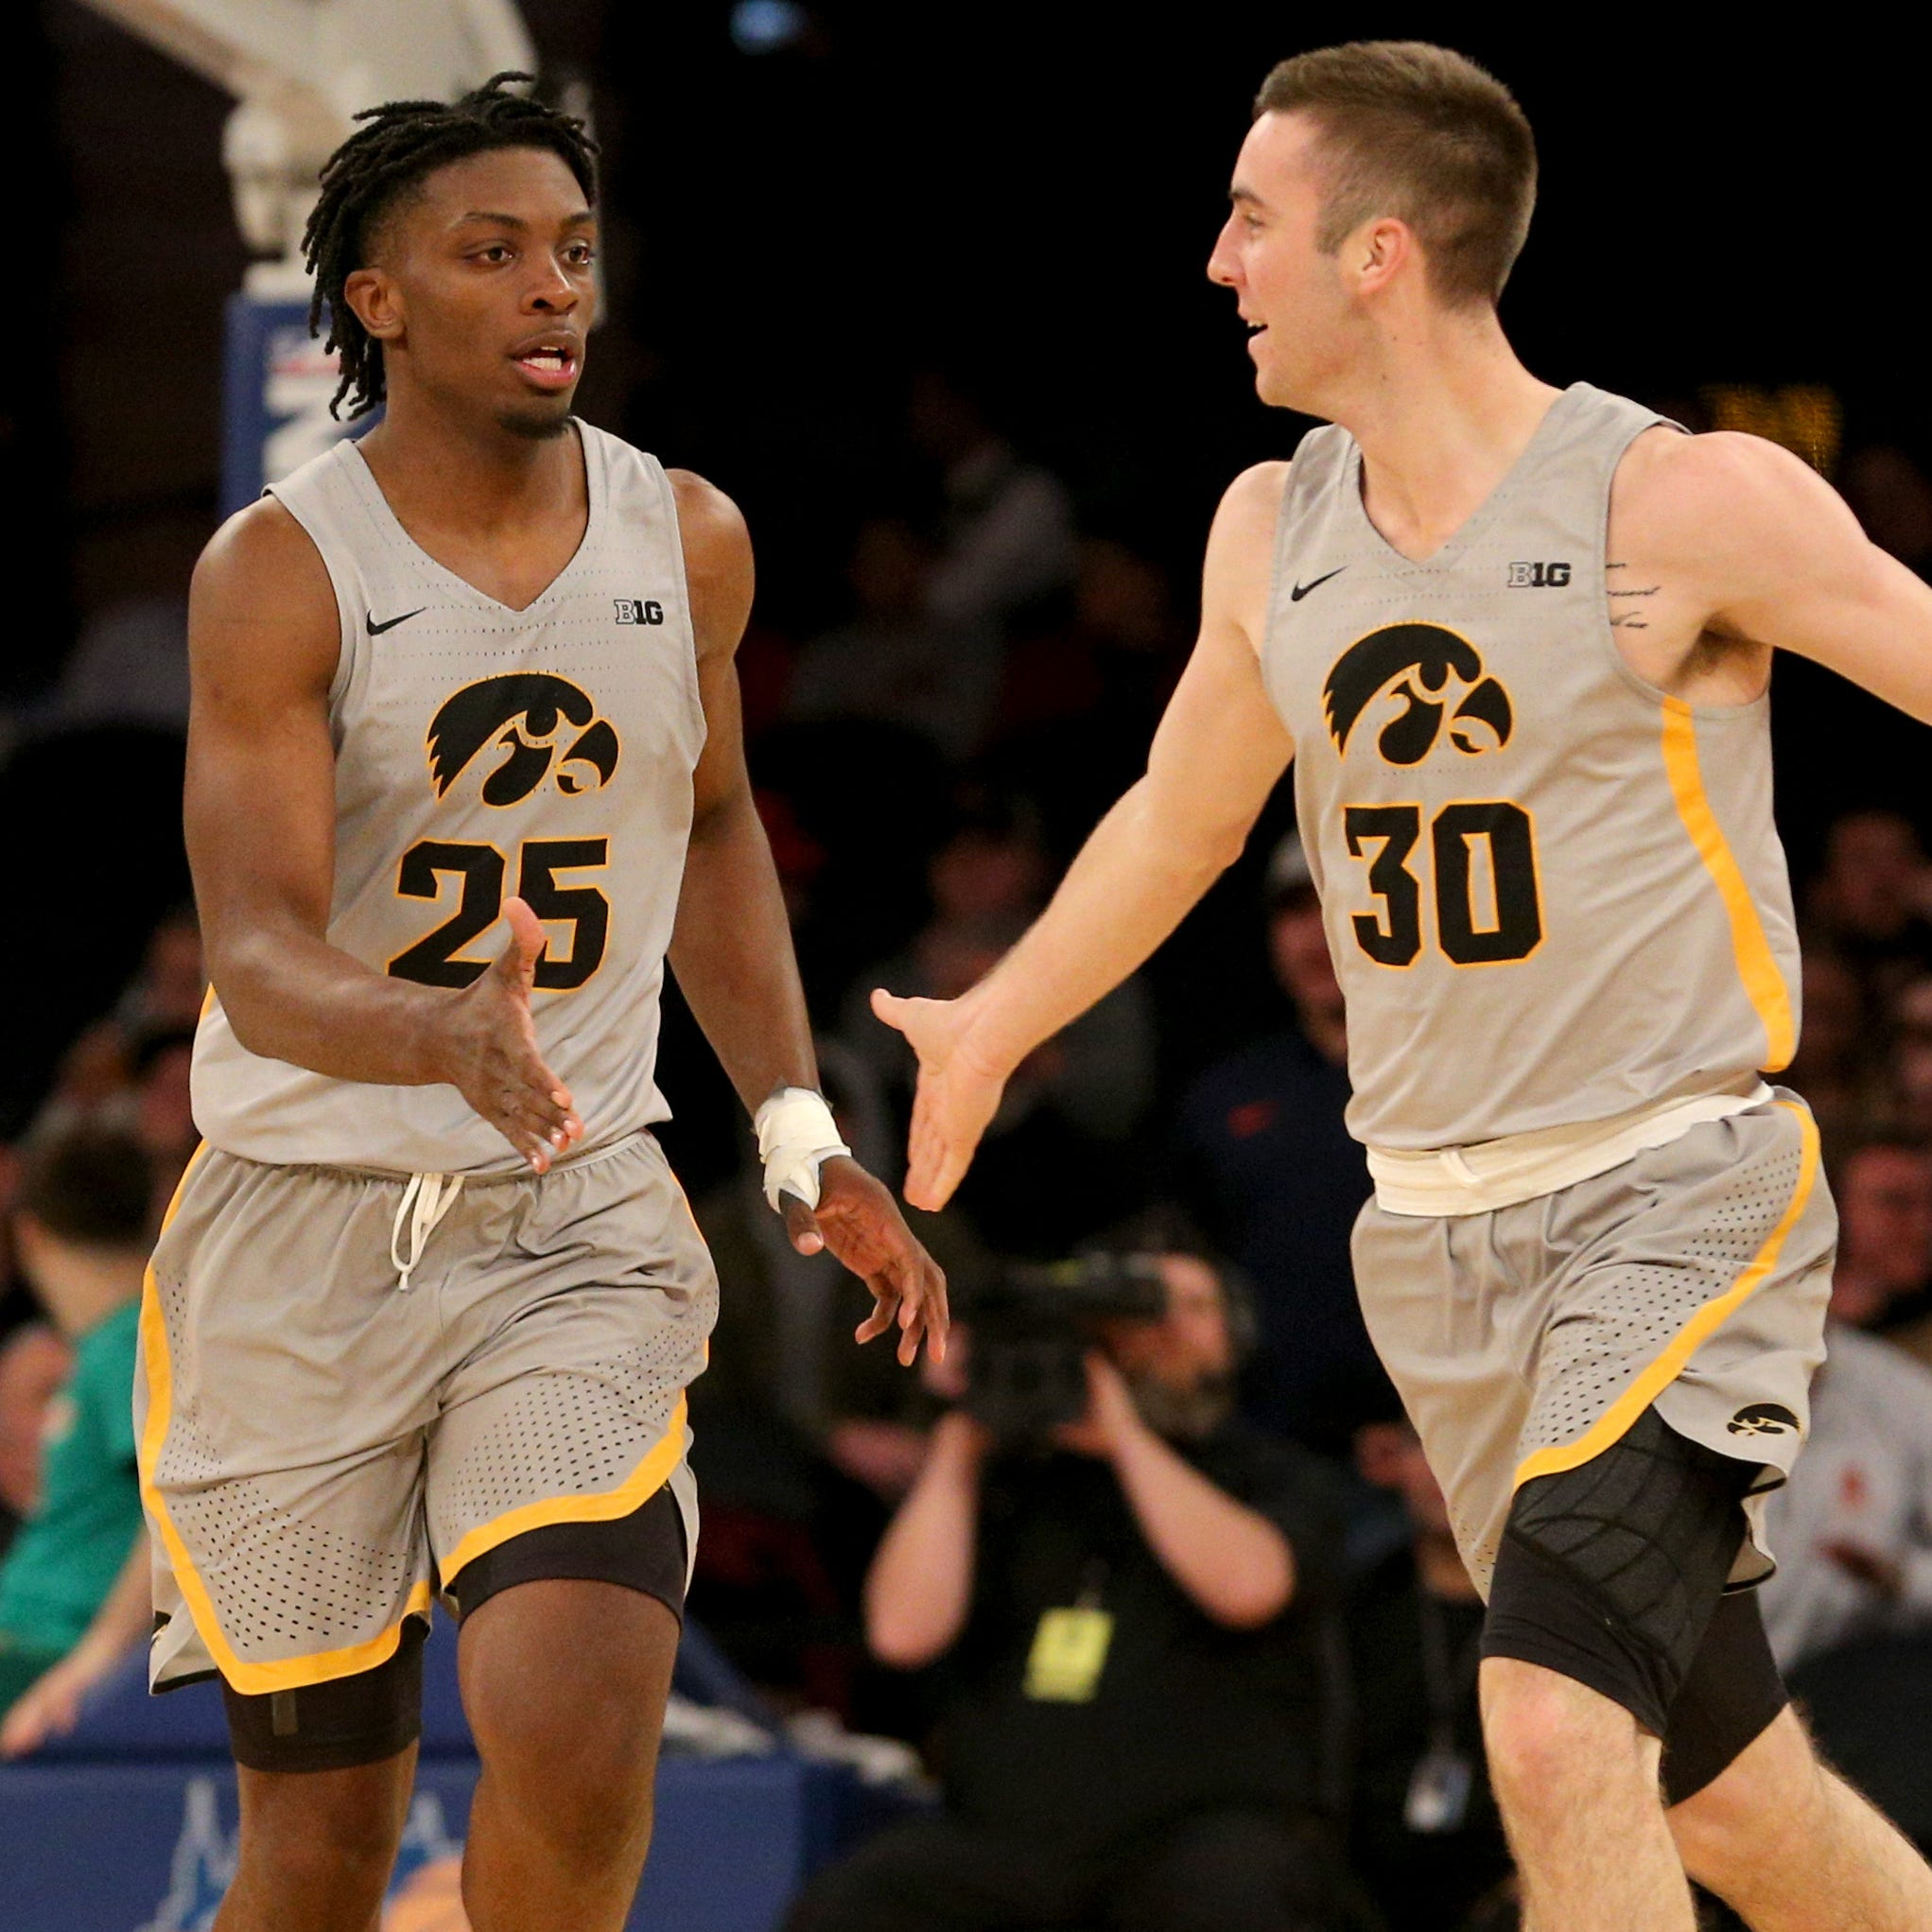 Iowa men's basketball team nationally ranked for first time in three years